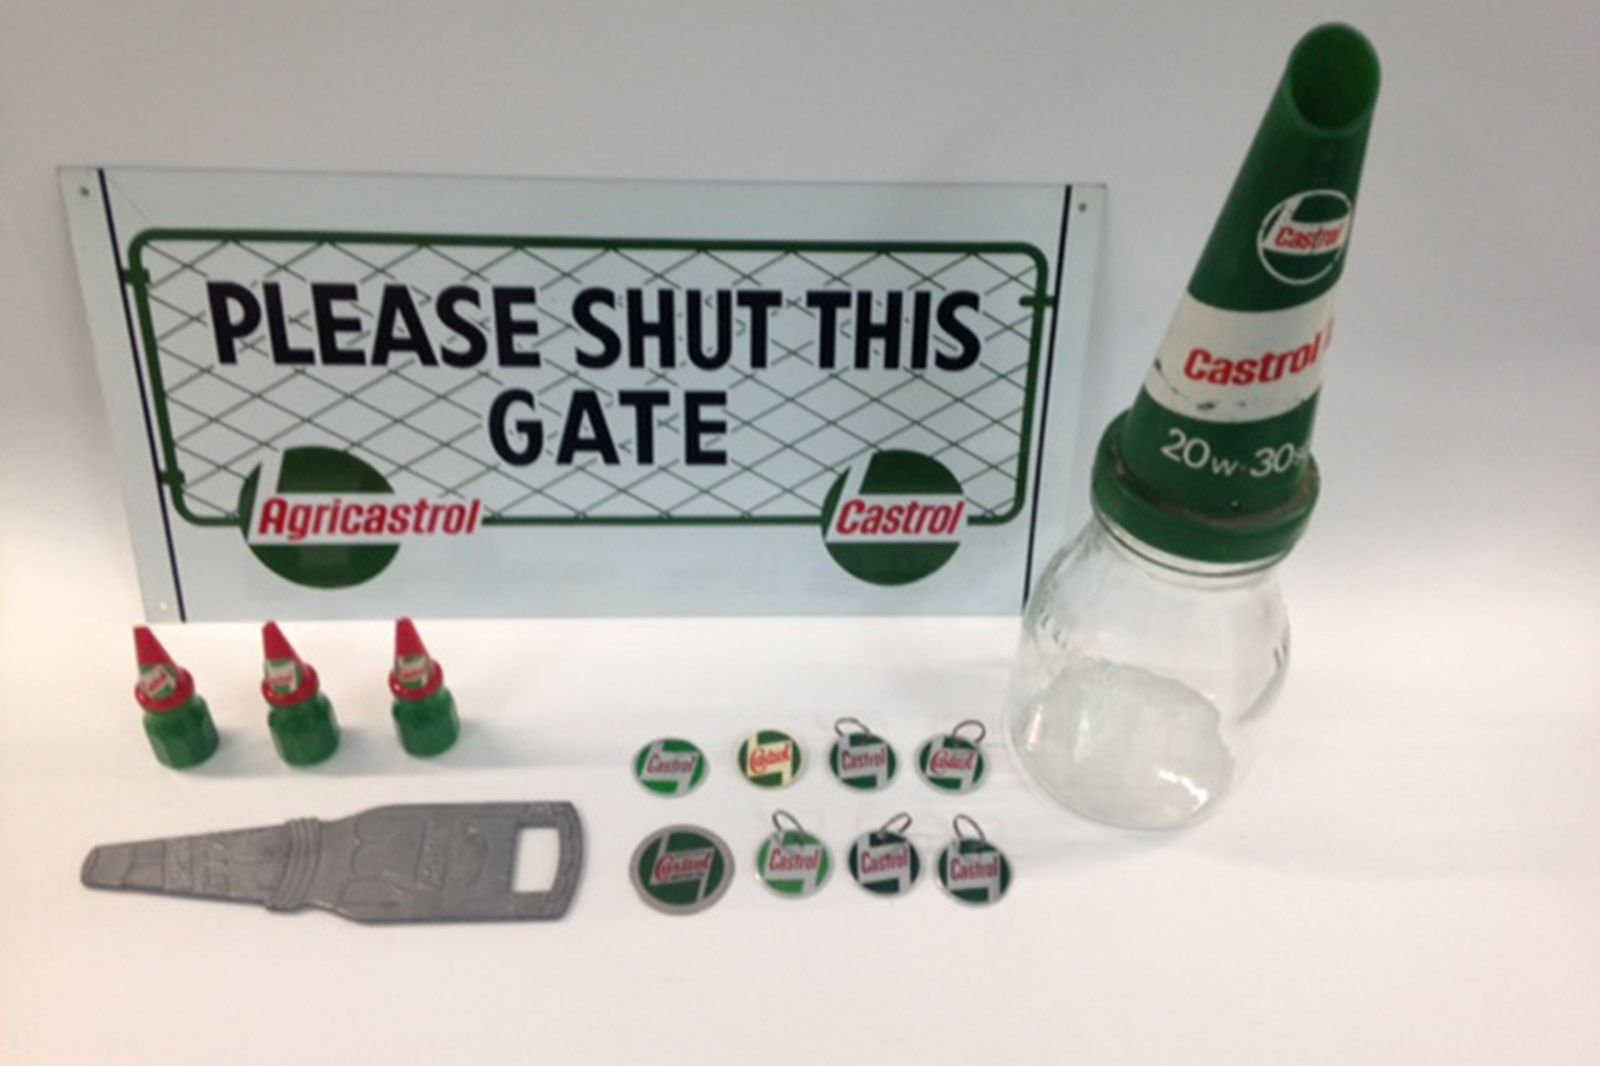 Assorted Castrol collectables - One sign, Oil bottle, key rings, pencil sharpner and bottle opener